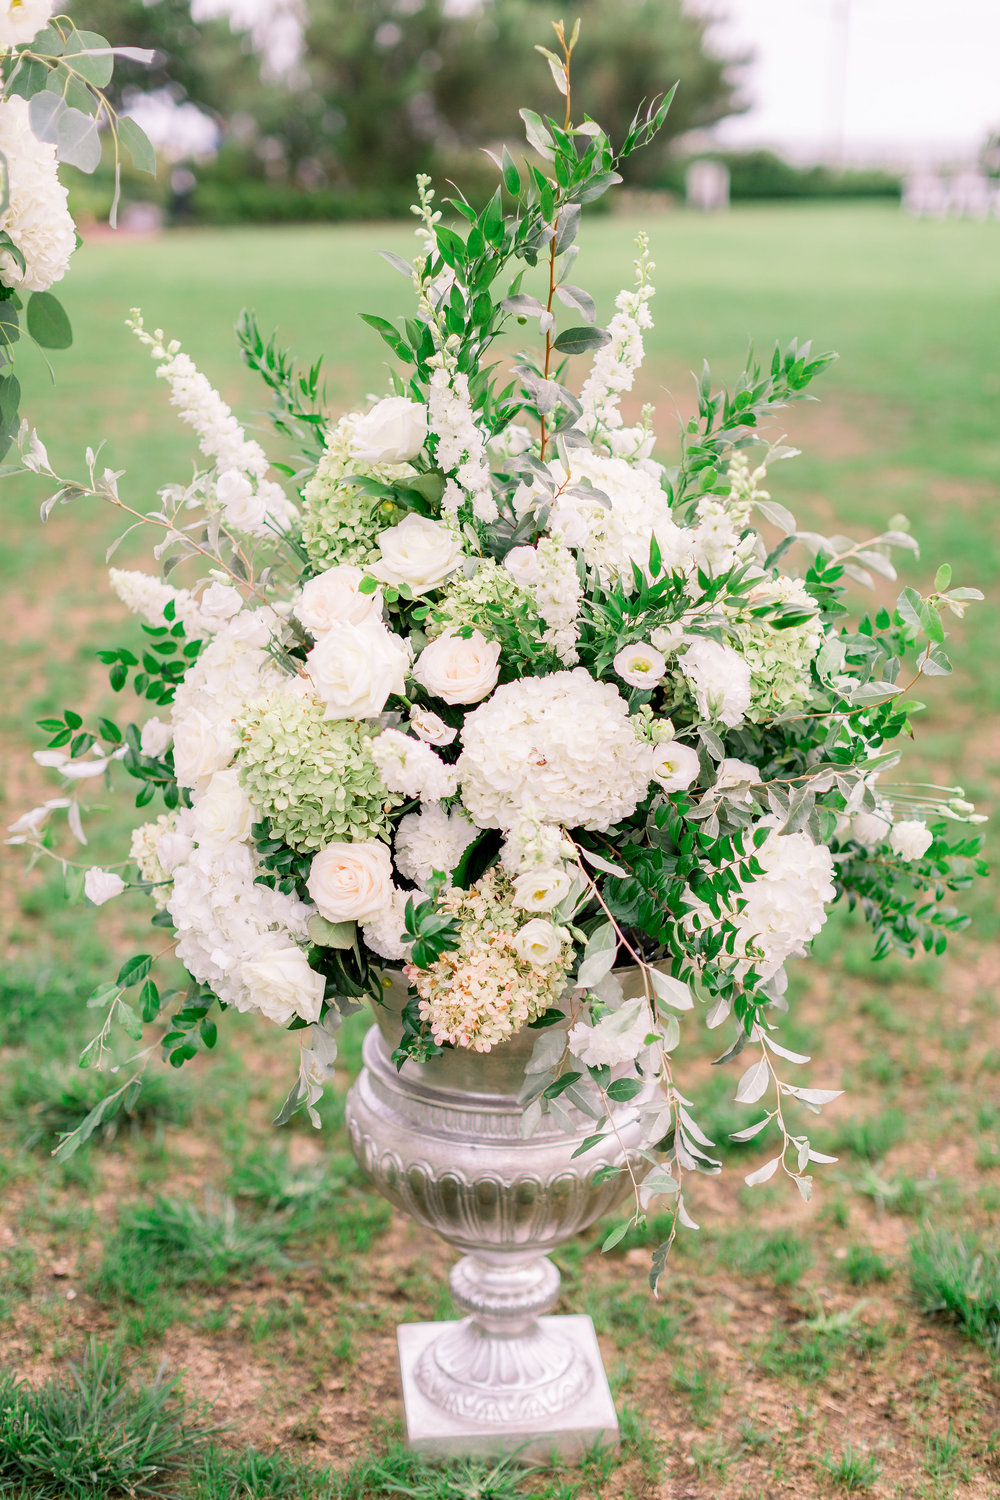 Cape May Wedding, Congress Hall, Green and White Wedding, Local Flowers, Hydrangea, Ceremony Decor, Aisle Decor, Urn, Grove Photography